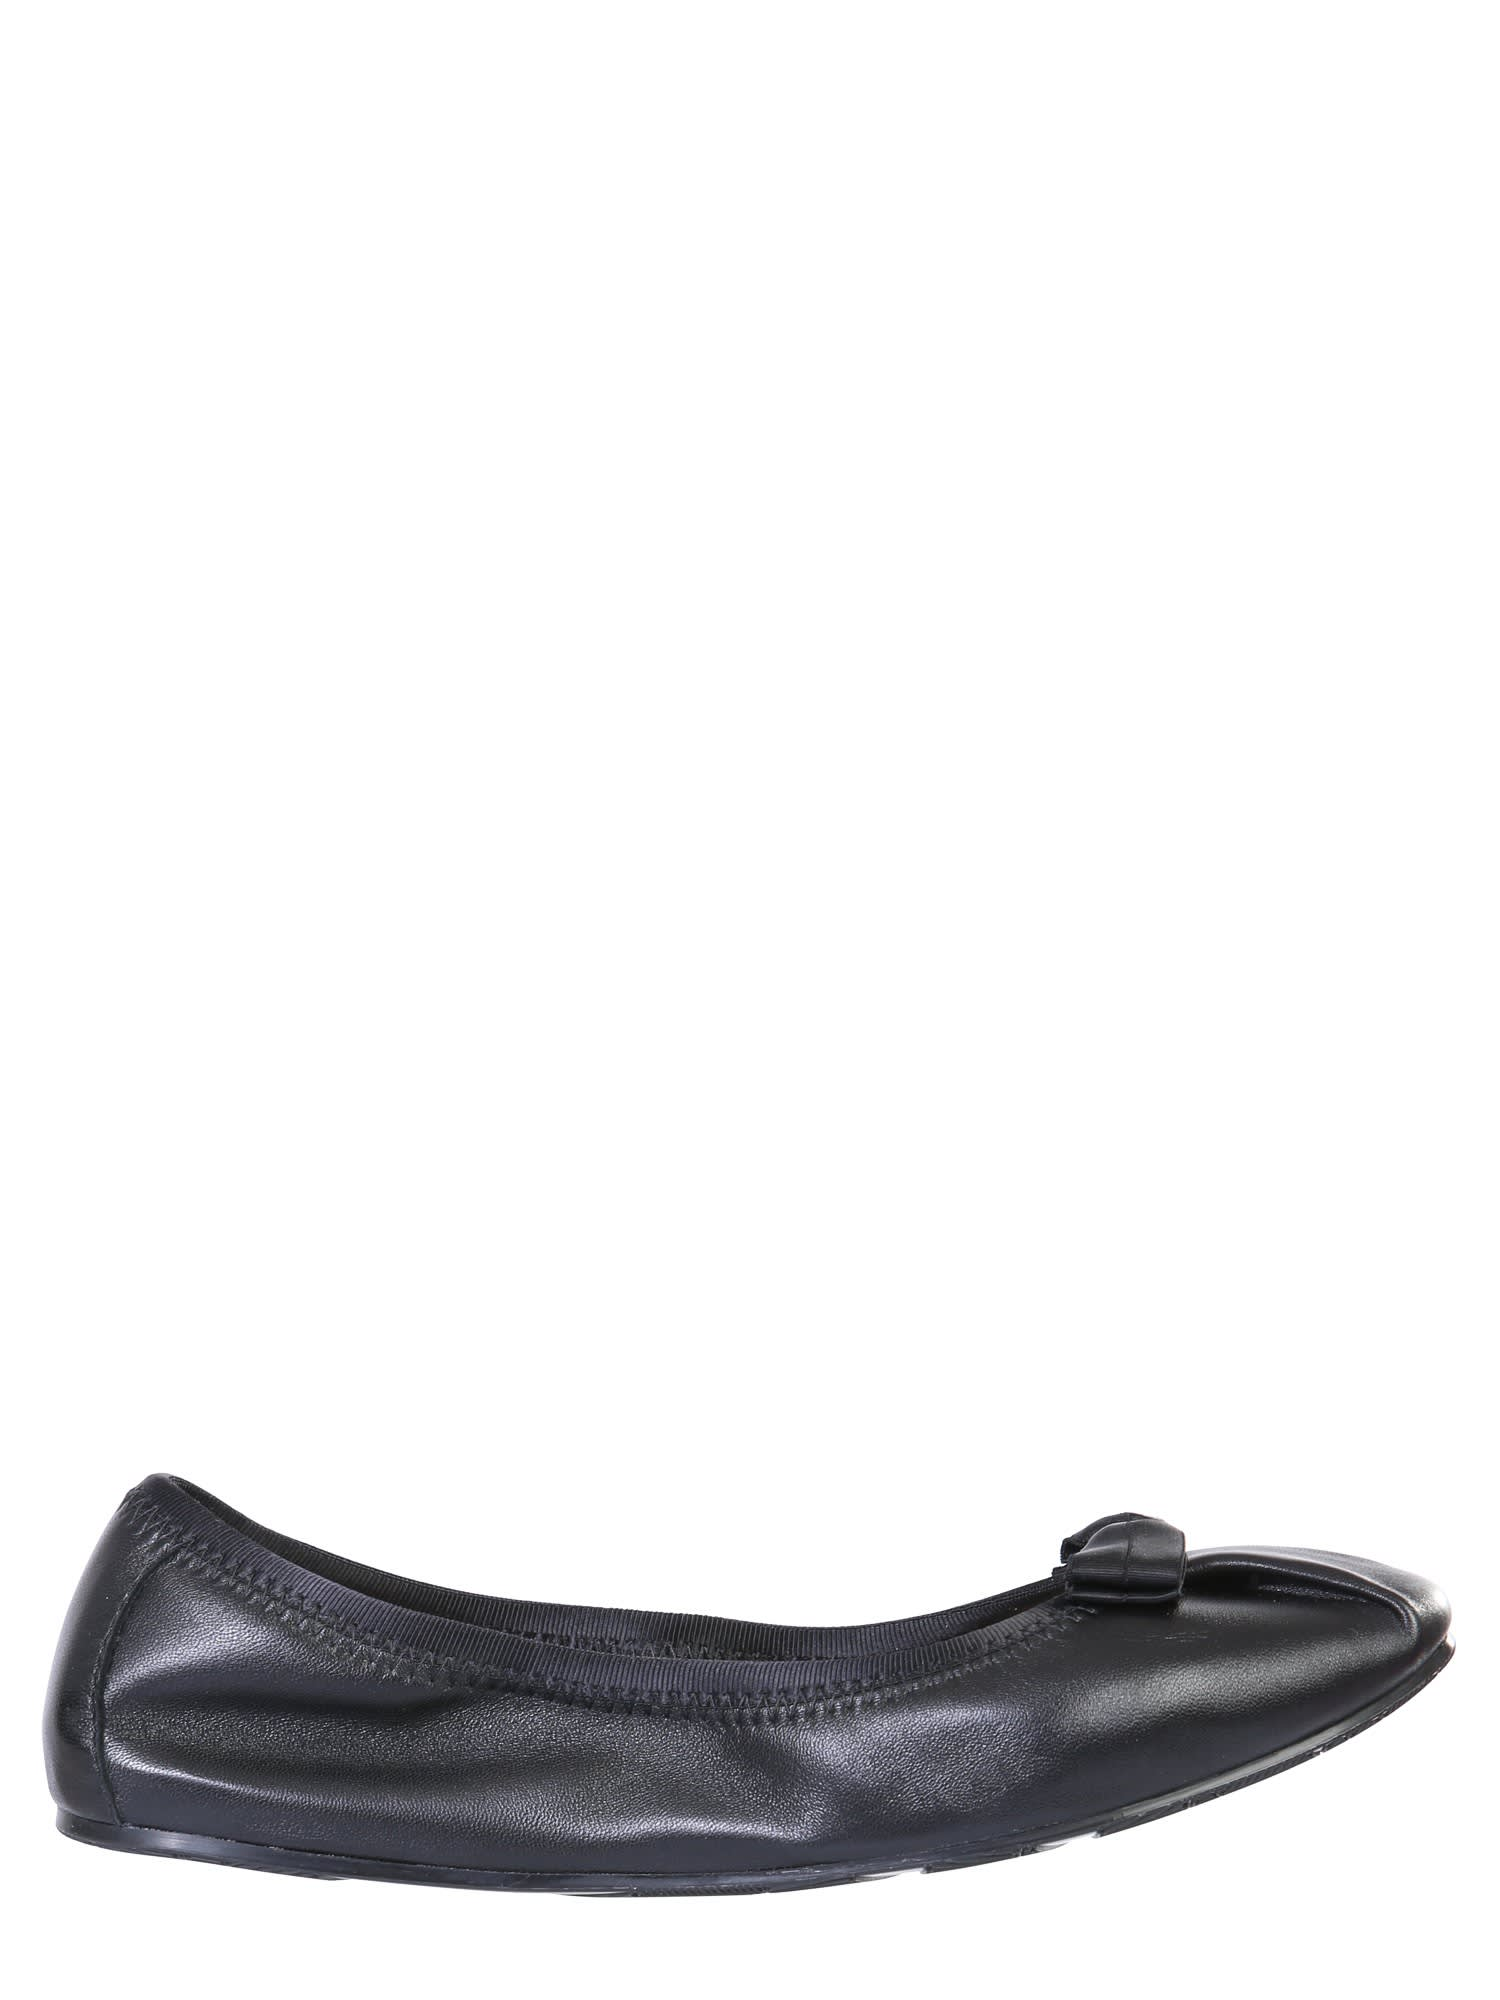 Salvatore Ferragamo FOLDABLE BALLERINAS